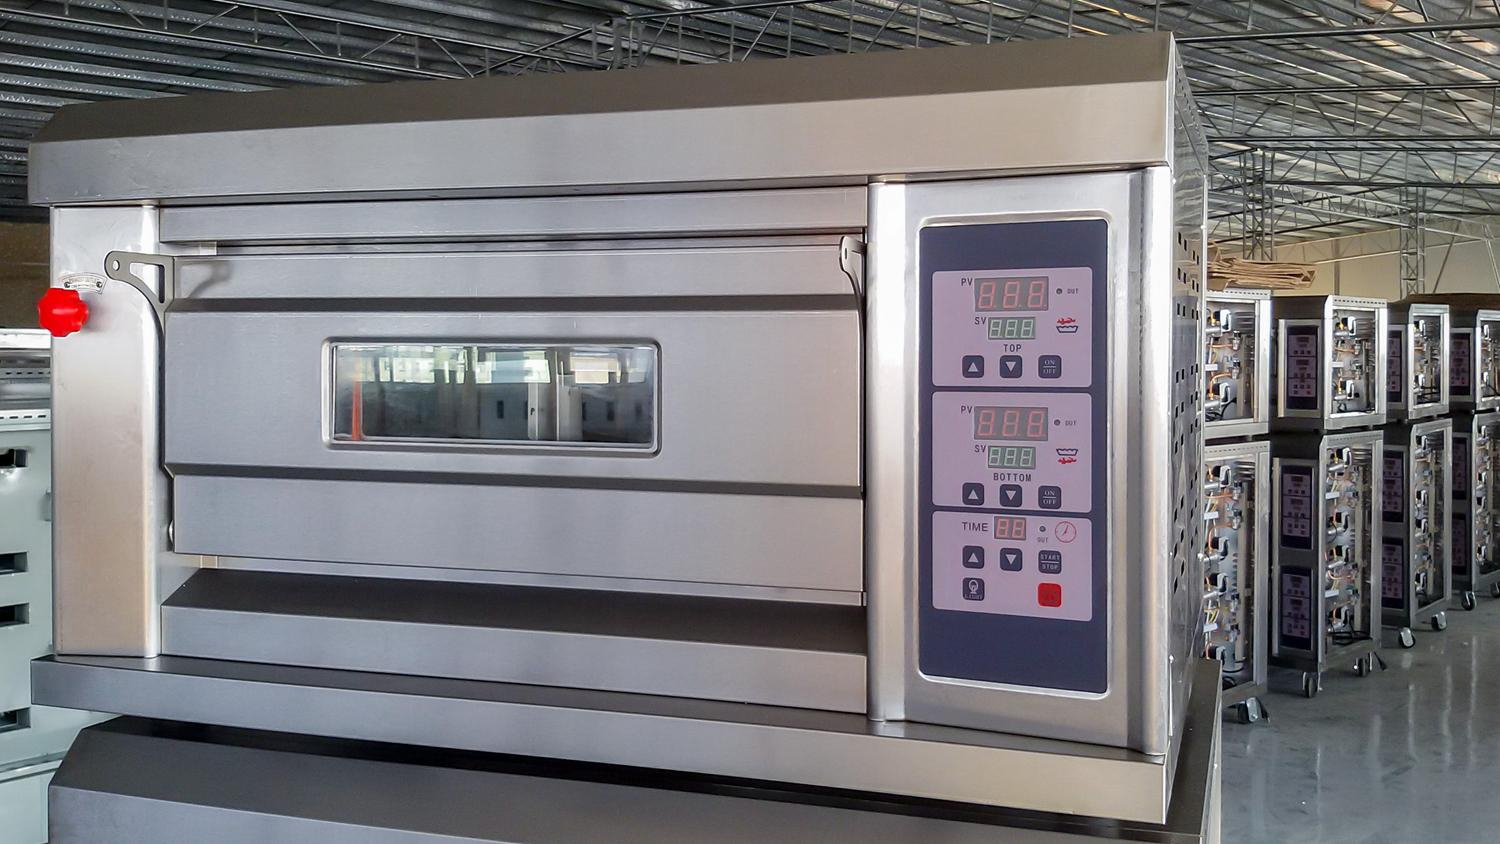 Stainless Steel Bakery Oven